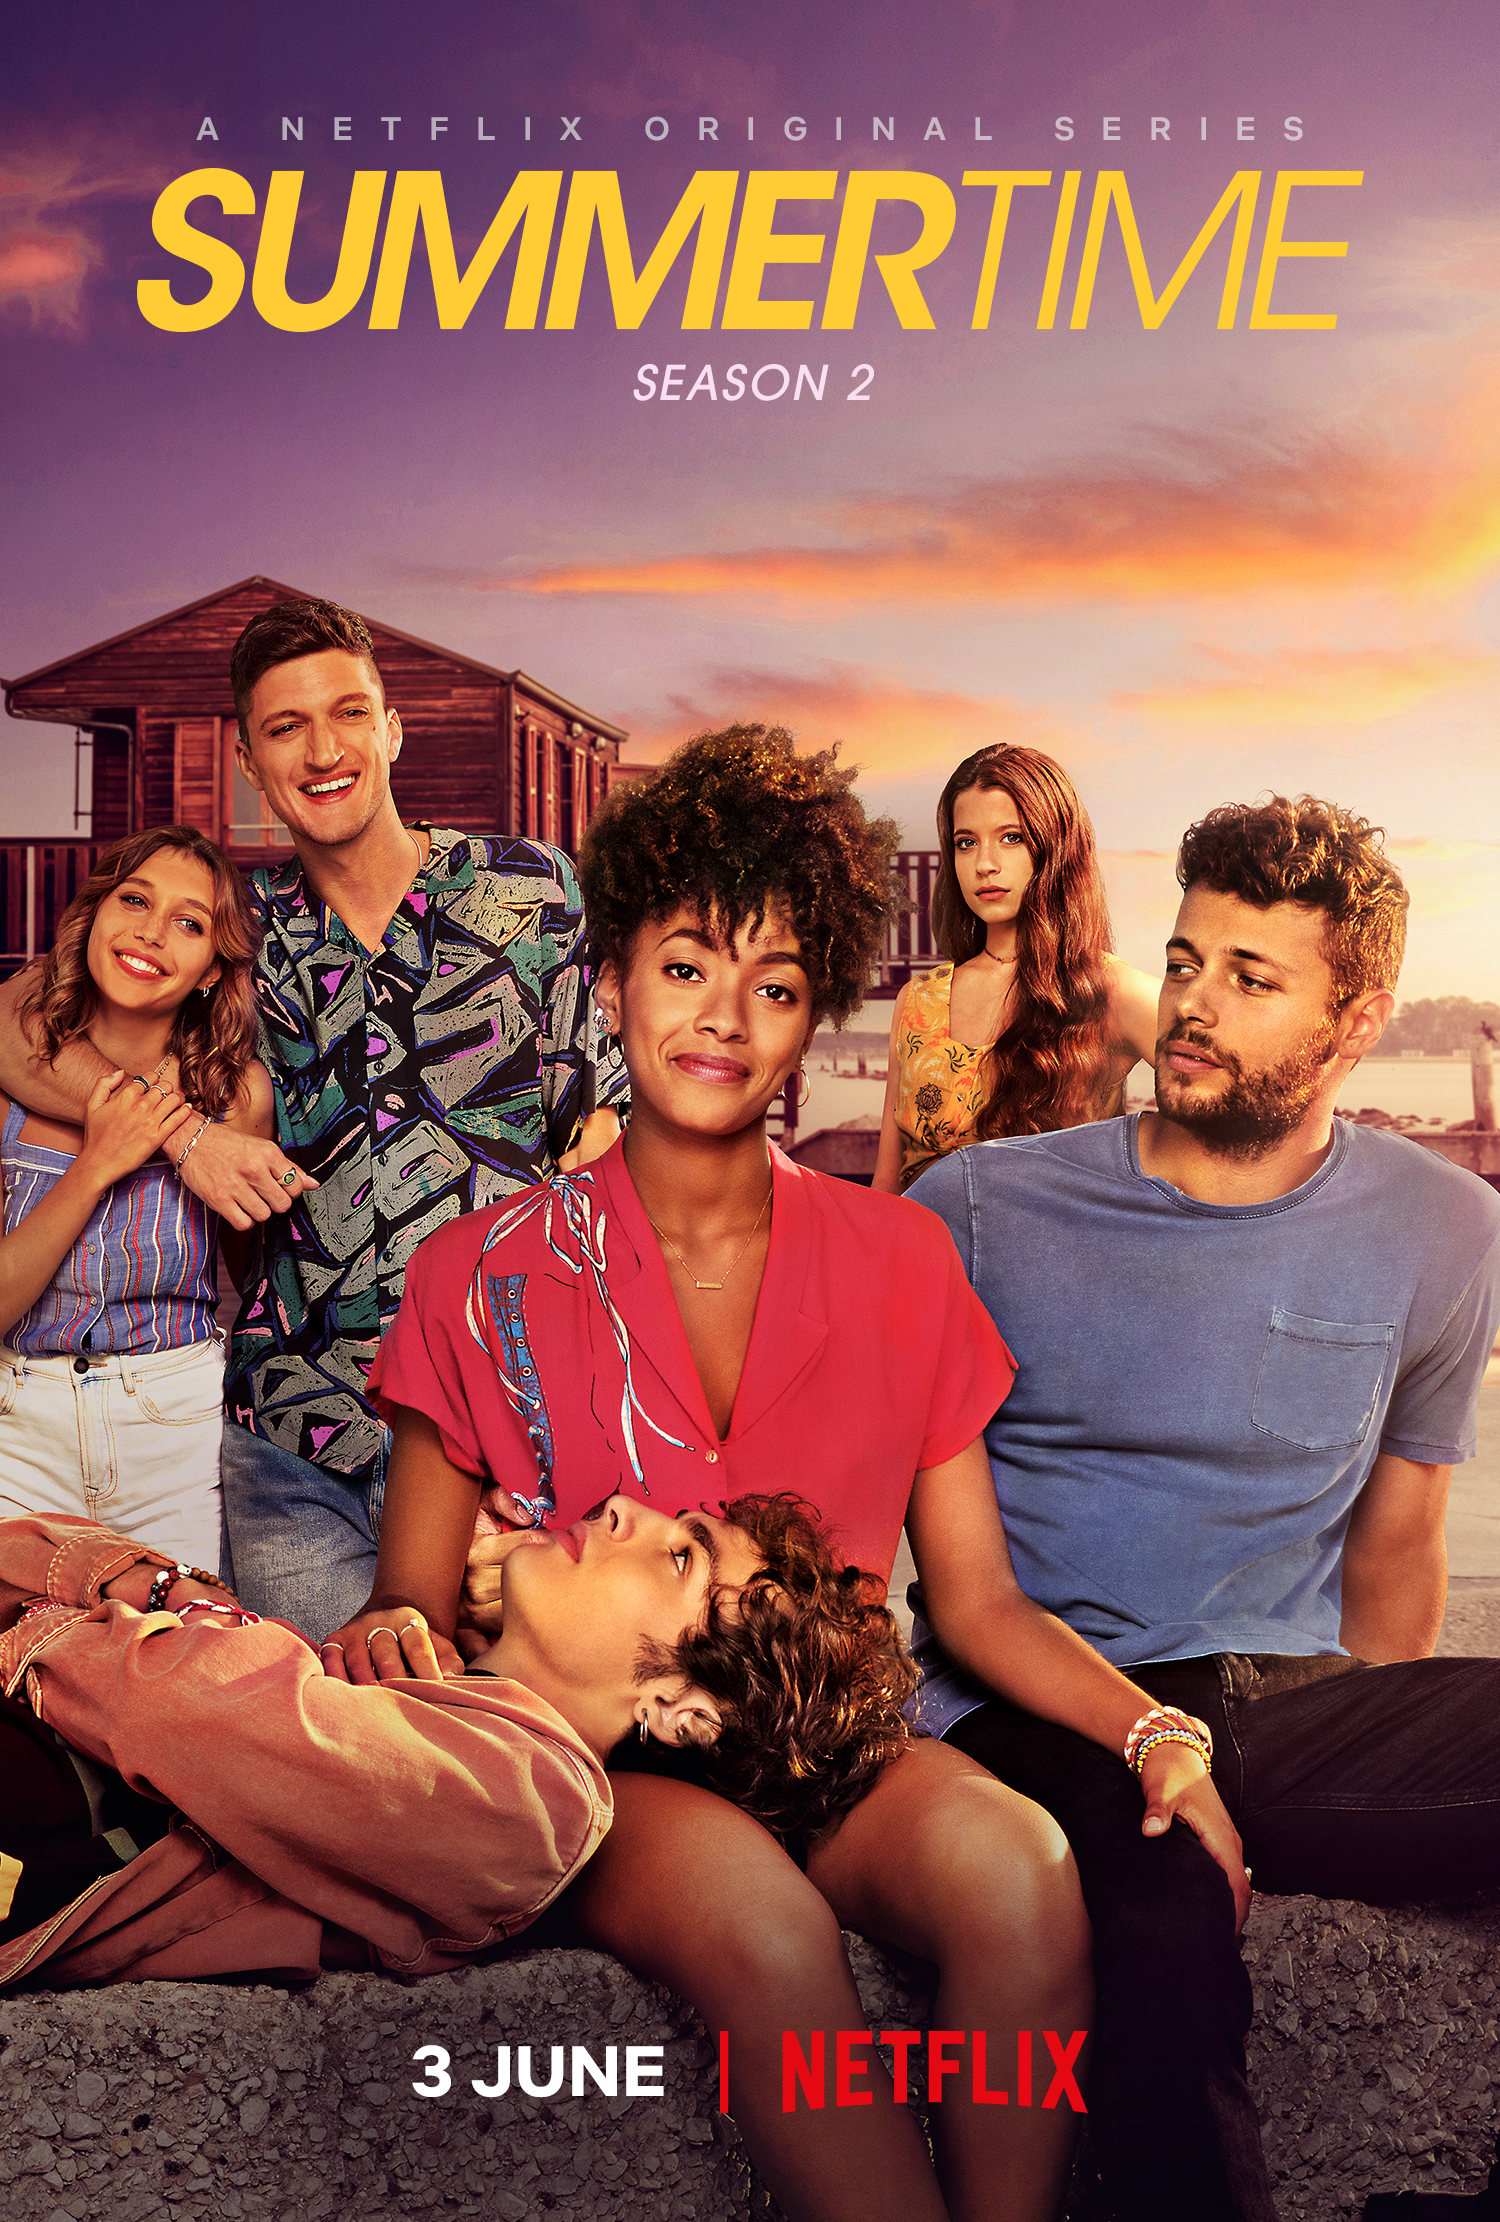 Netflix - SUMMERTIME Everything Coming To Netflix In June 2021